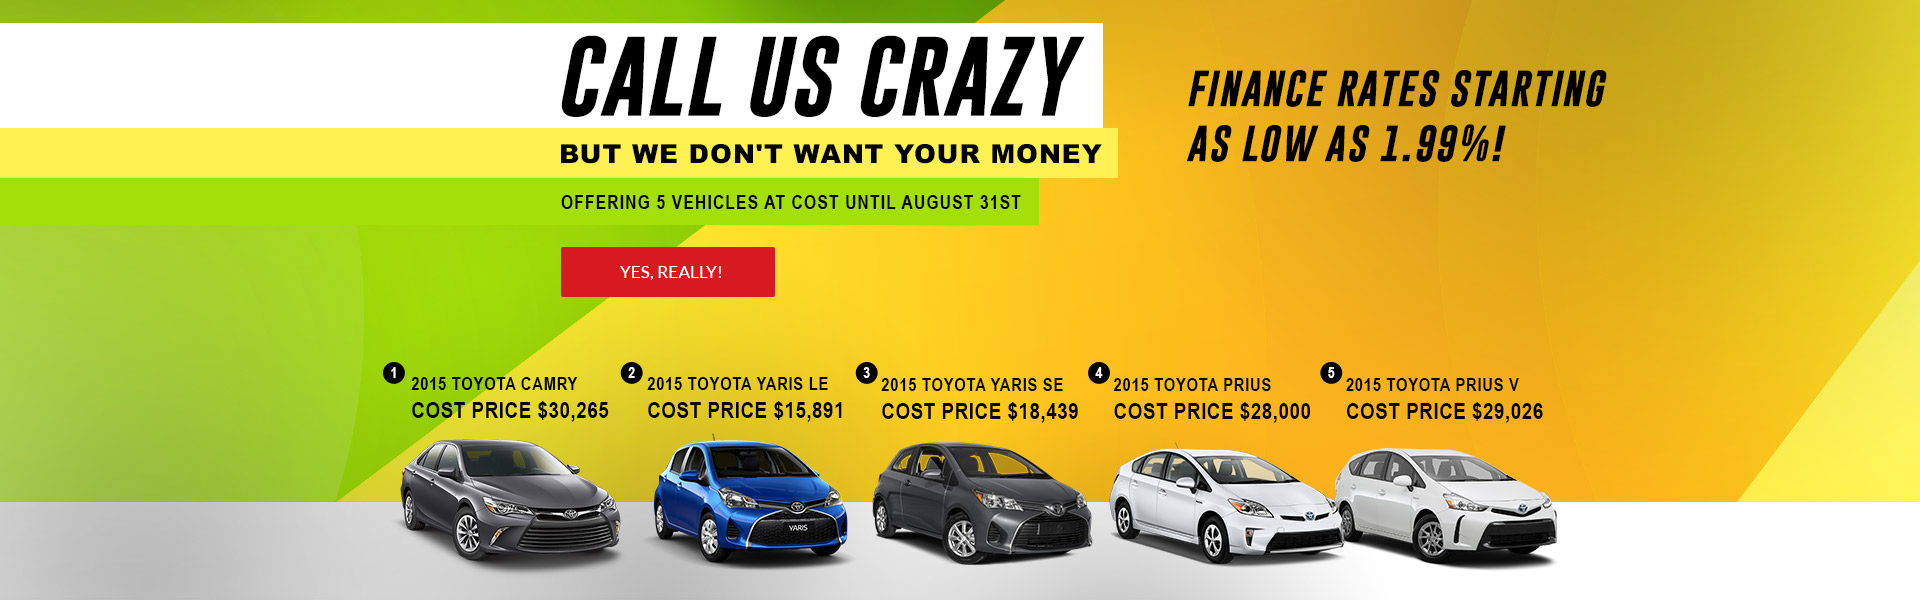 Call us crazy but we don't want your money. Now offering 5 vehicles at cost! Until August 31st